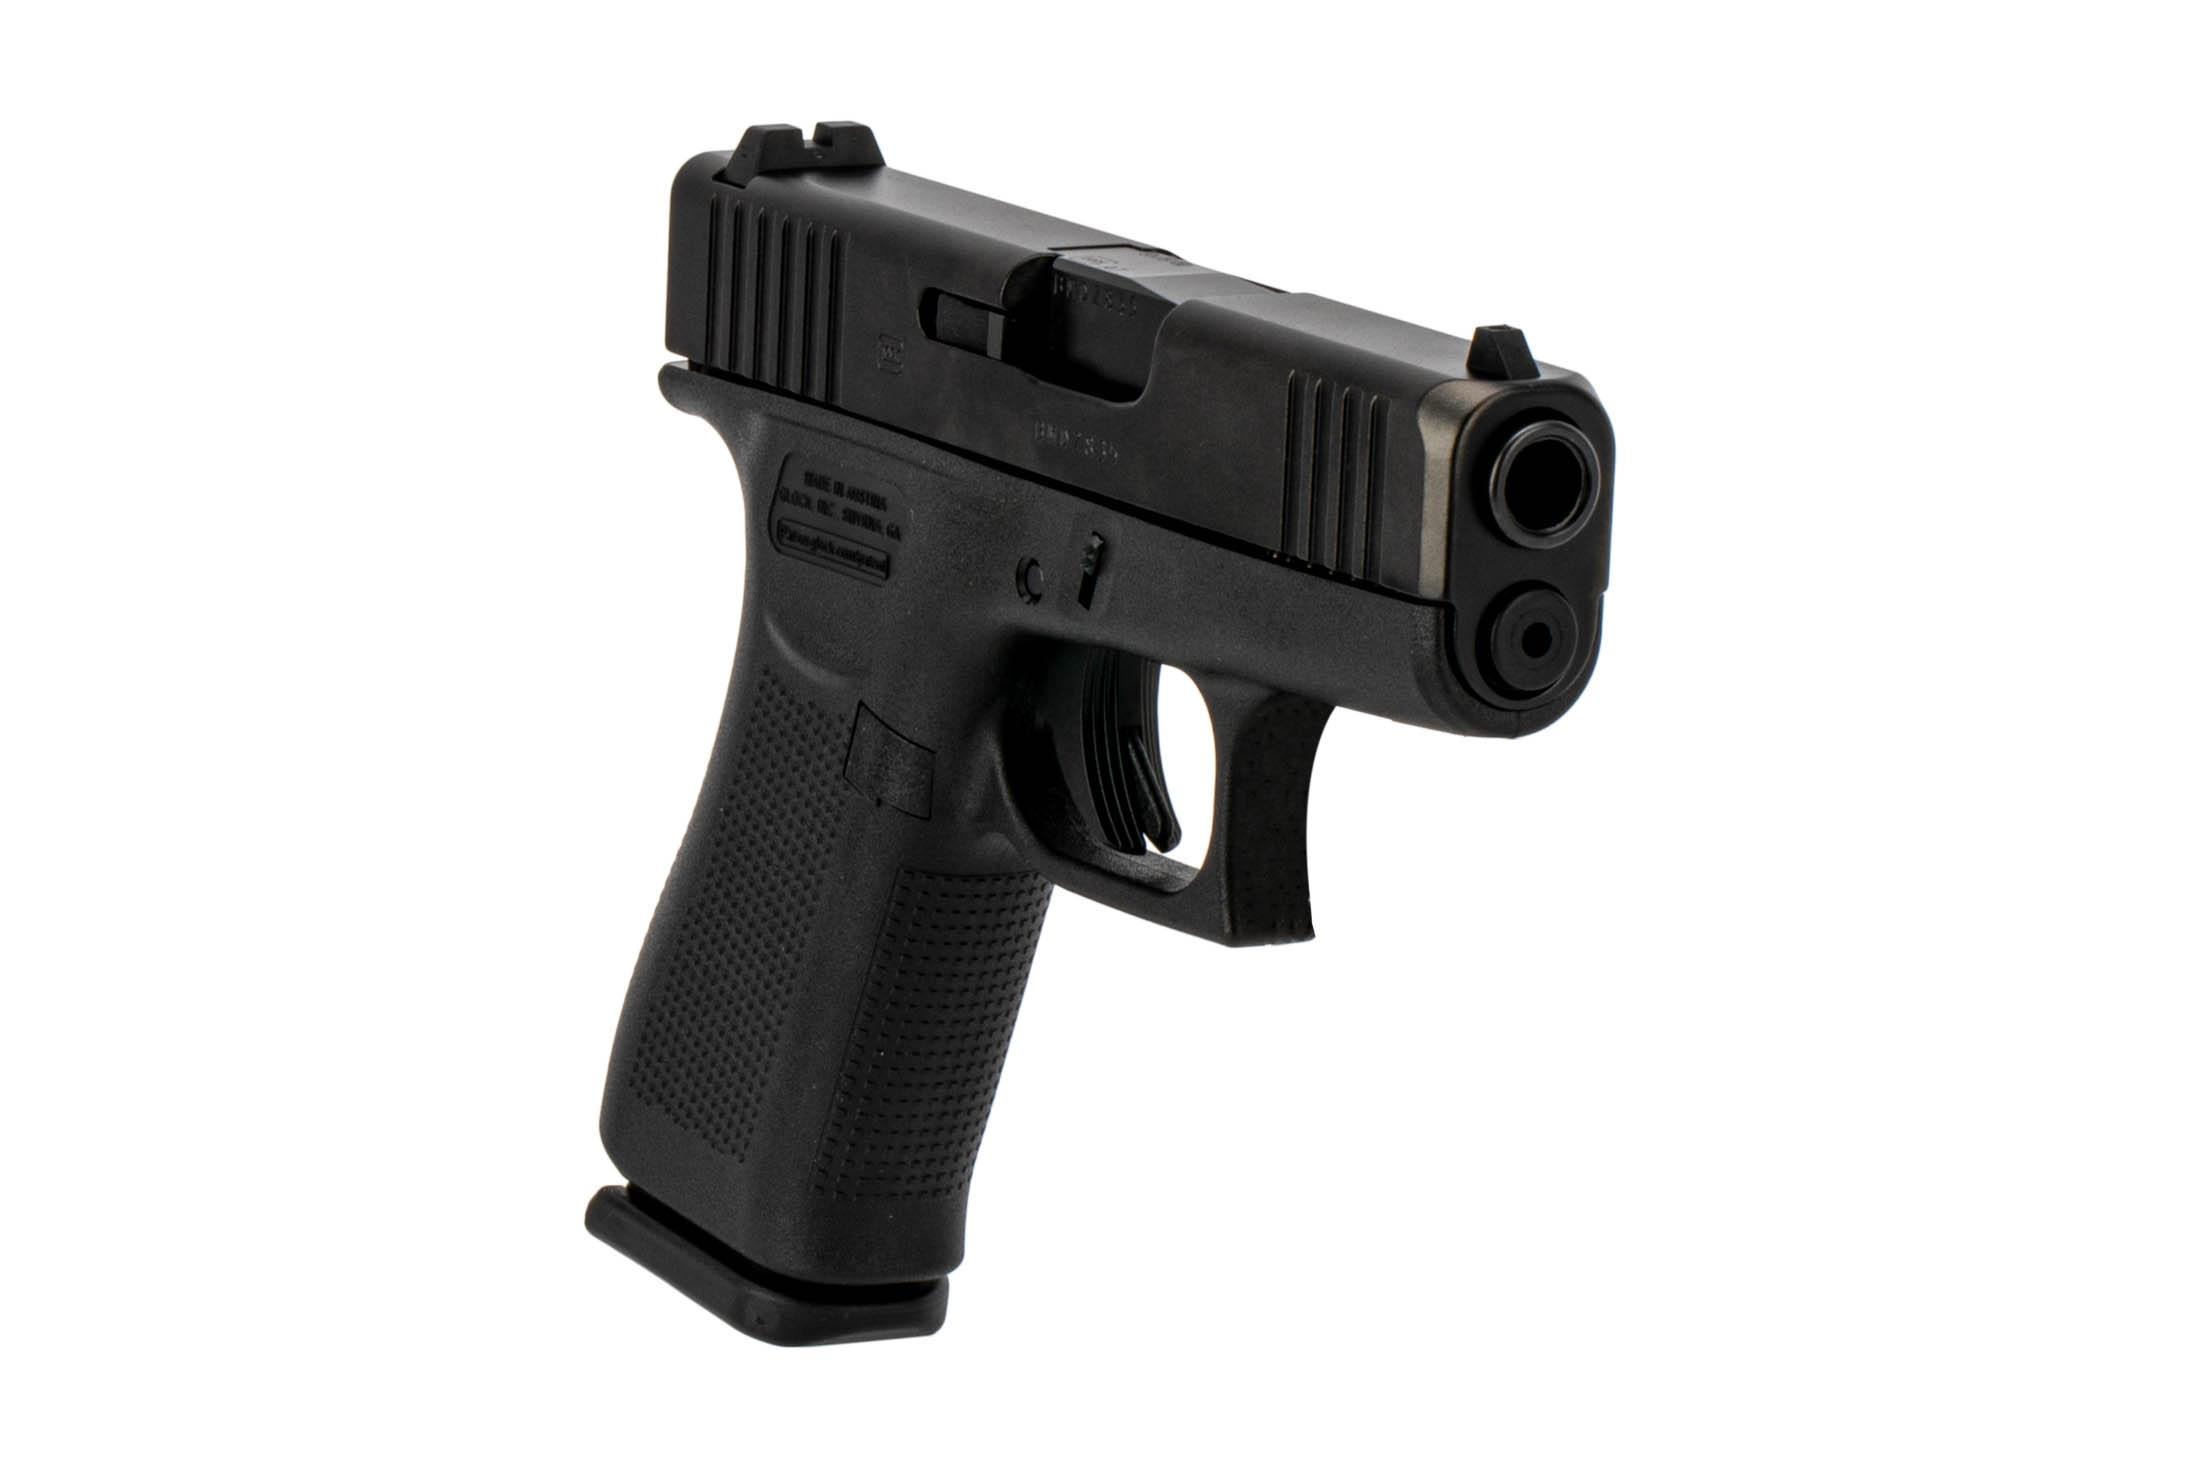 Glock G43x sub compact 9mm handgun with forward slide serrations and black nDLC slide finish